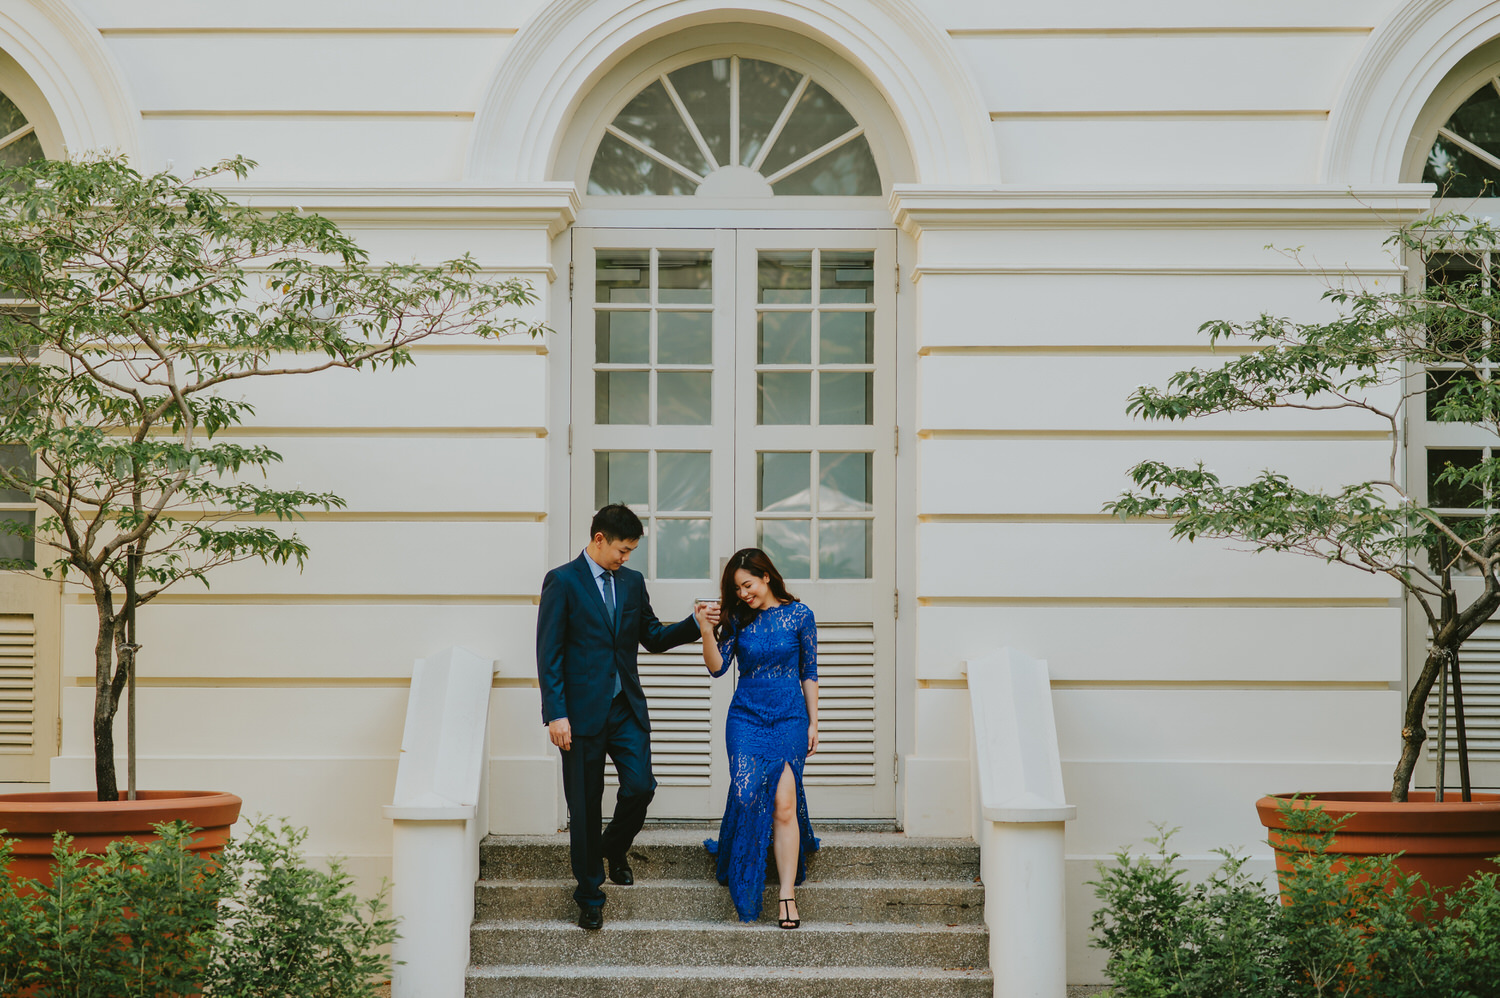 singapore prewedding destination - singapore wedding - diktatphotography - kadek artayasa - nikole + ardika - 6